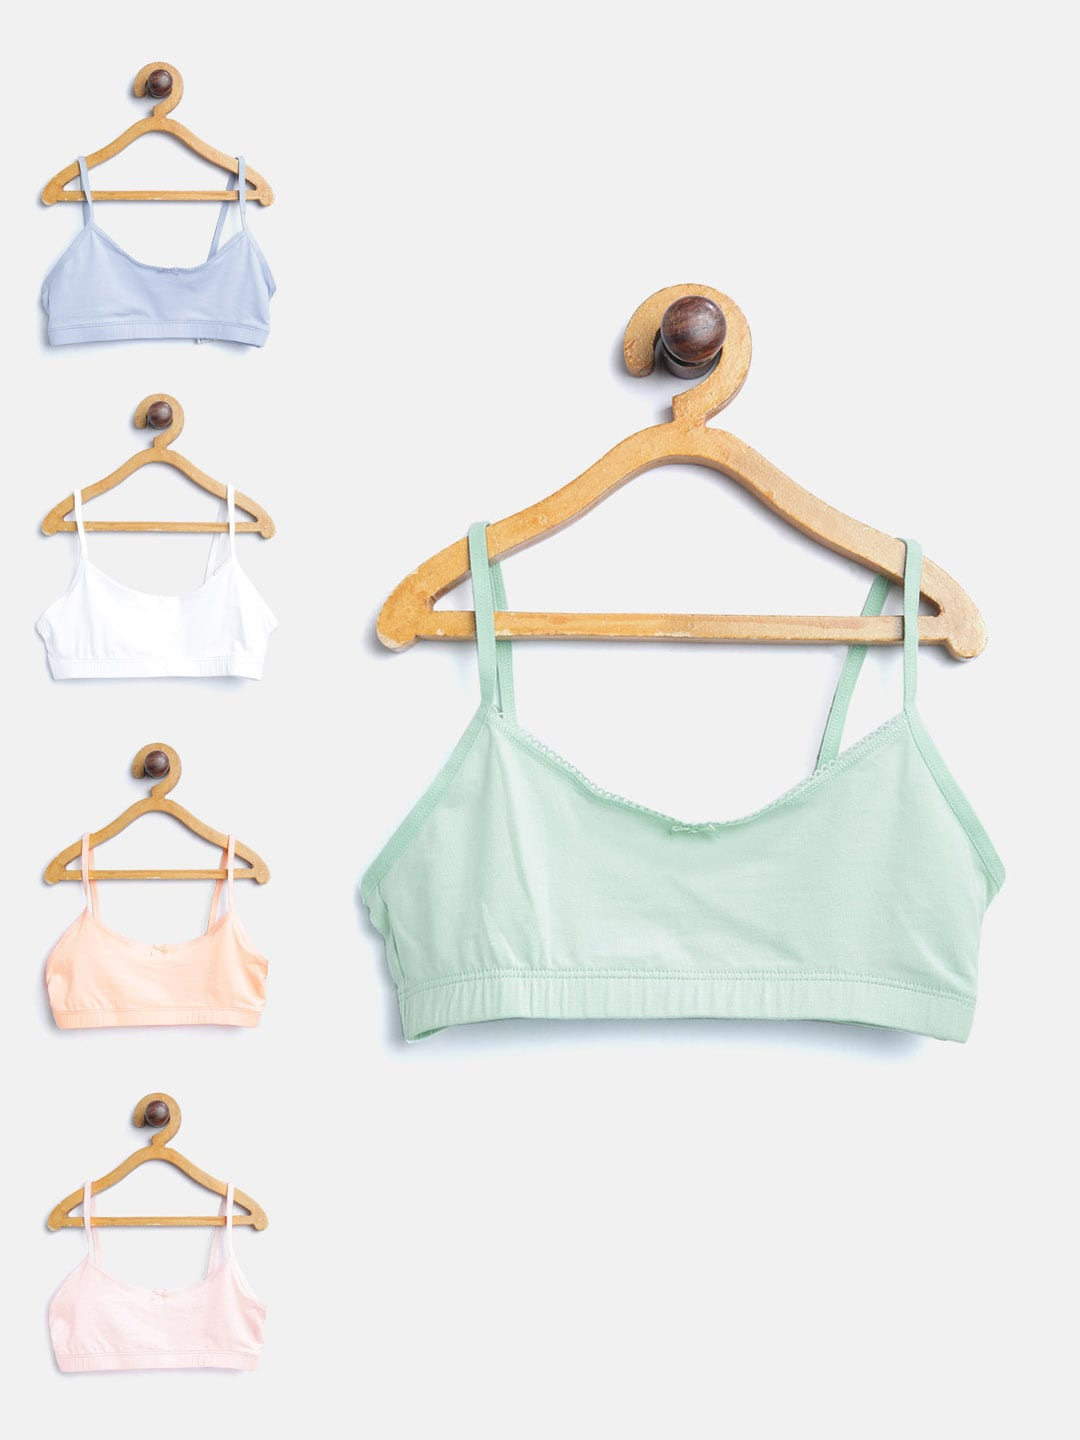 dd429e3def72a Bralette Tops - Buy Bralette Top for Women Online